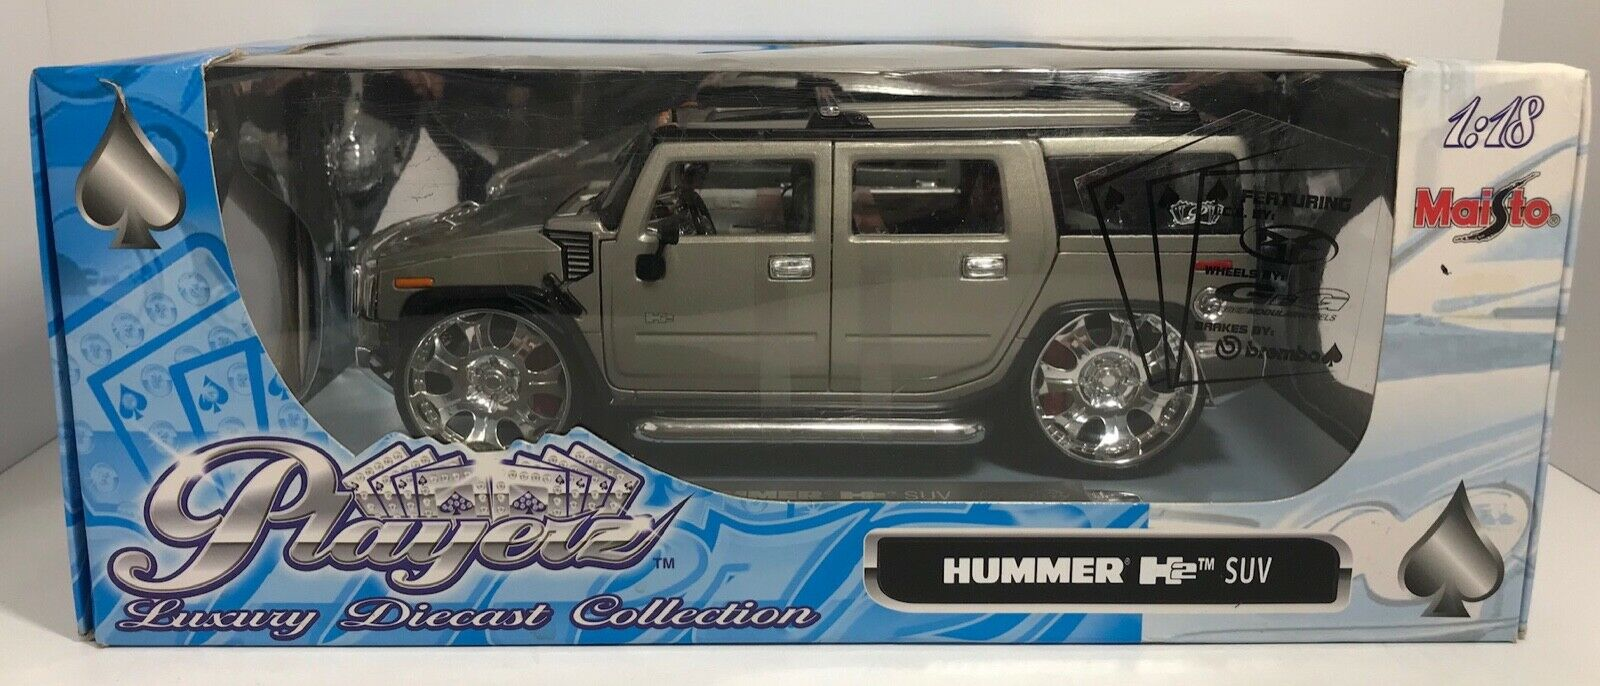 MAISTO PLAYERZ HUMMER H2 SUV GREY 1 18 SCALE DIE CAST  FREE SHIPPING